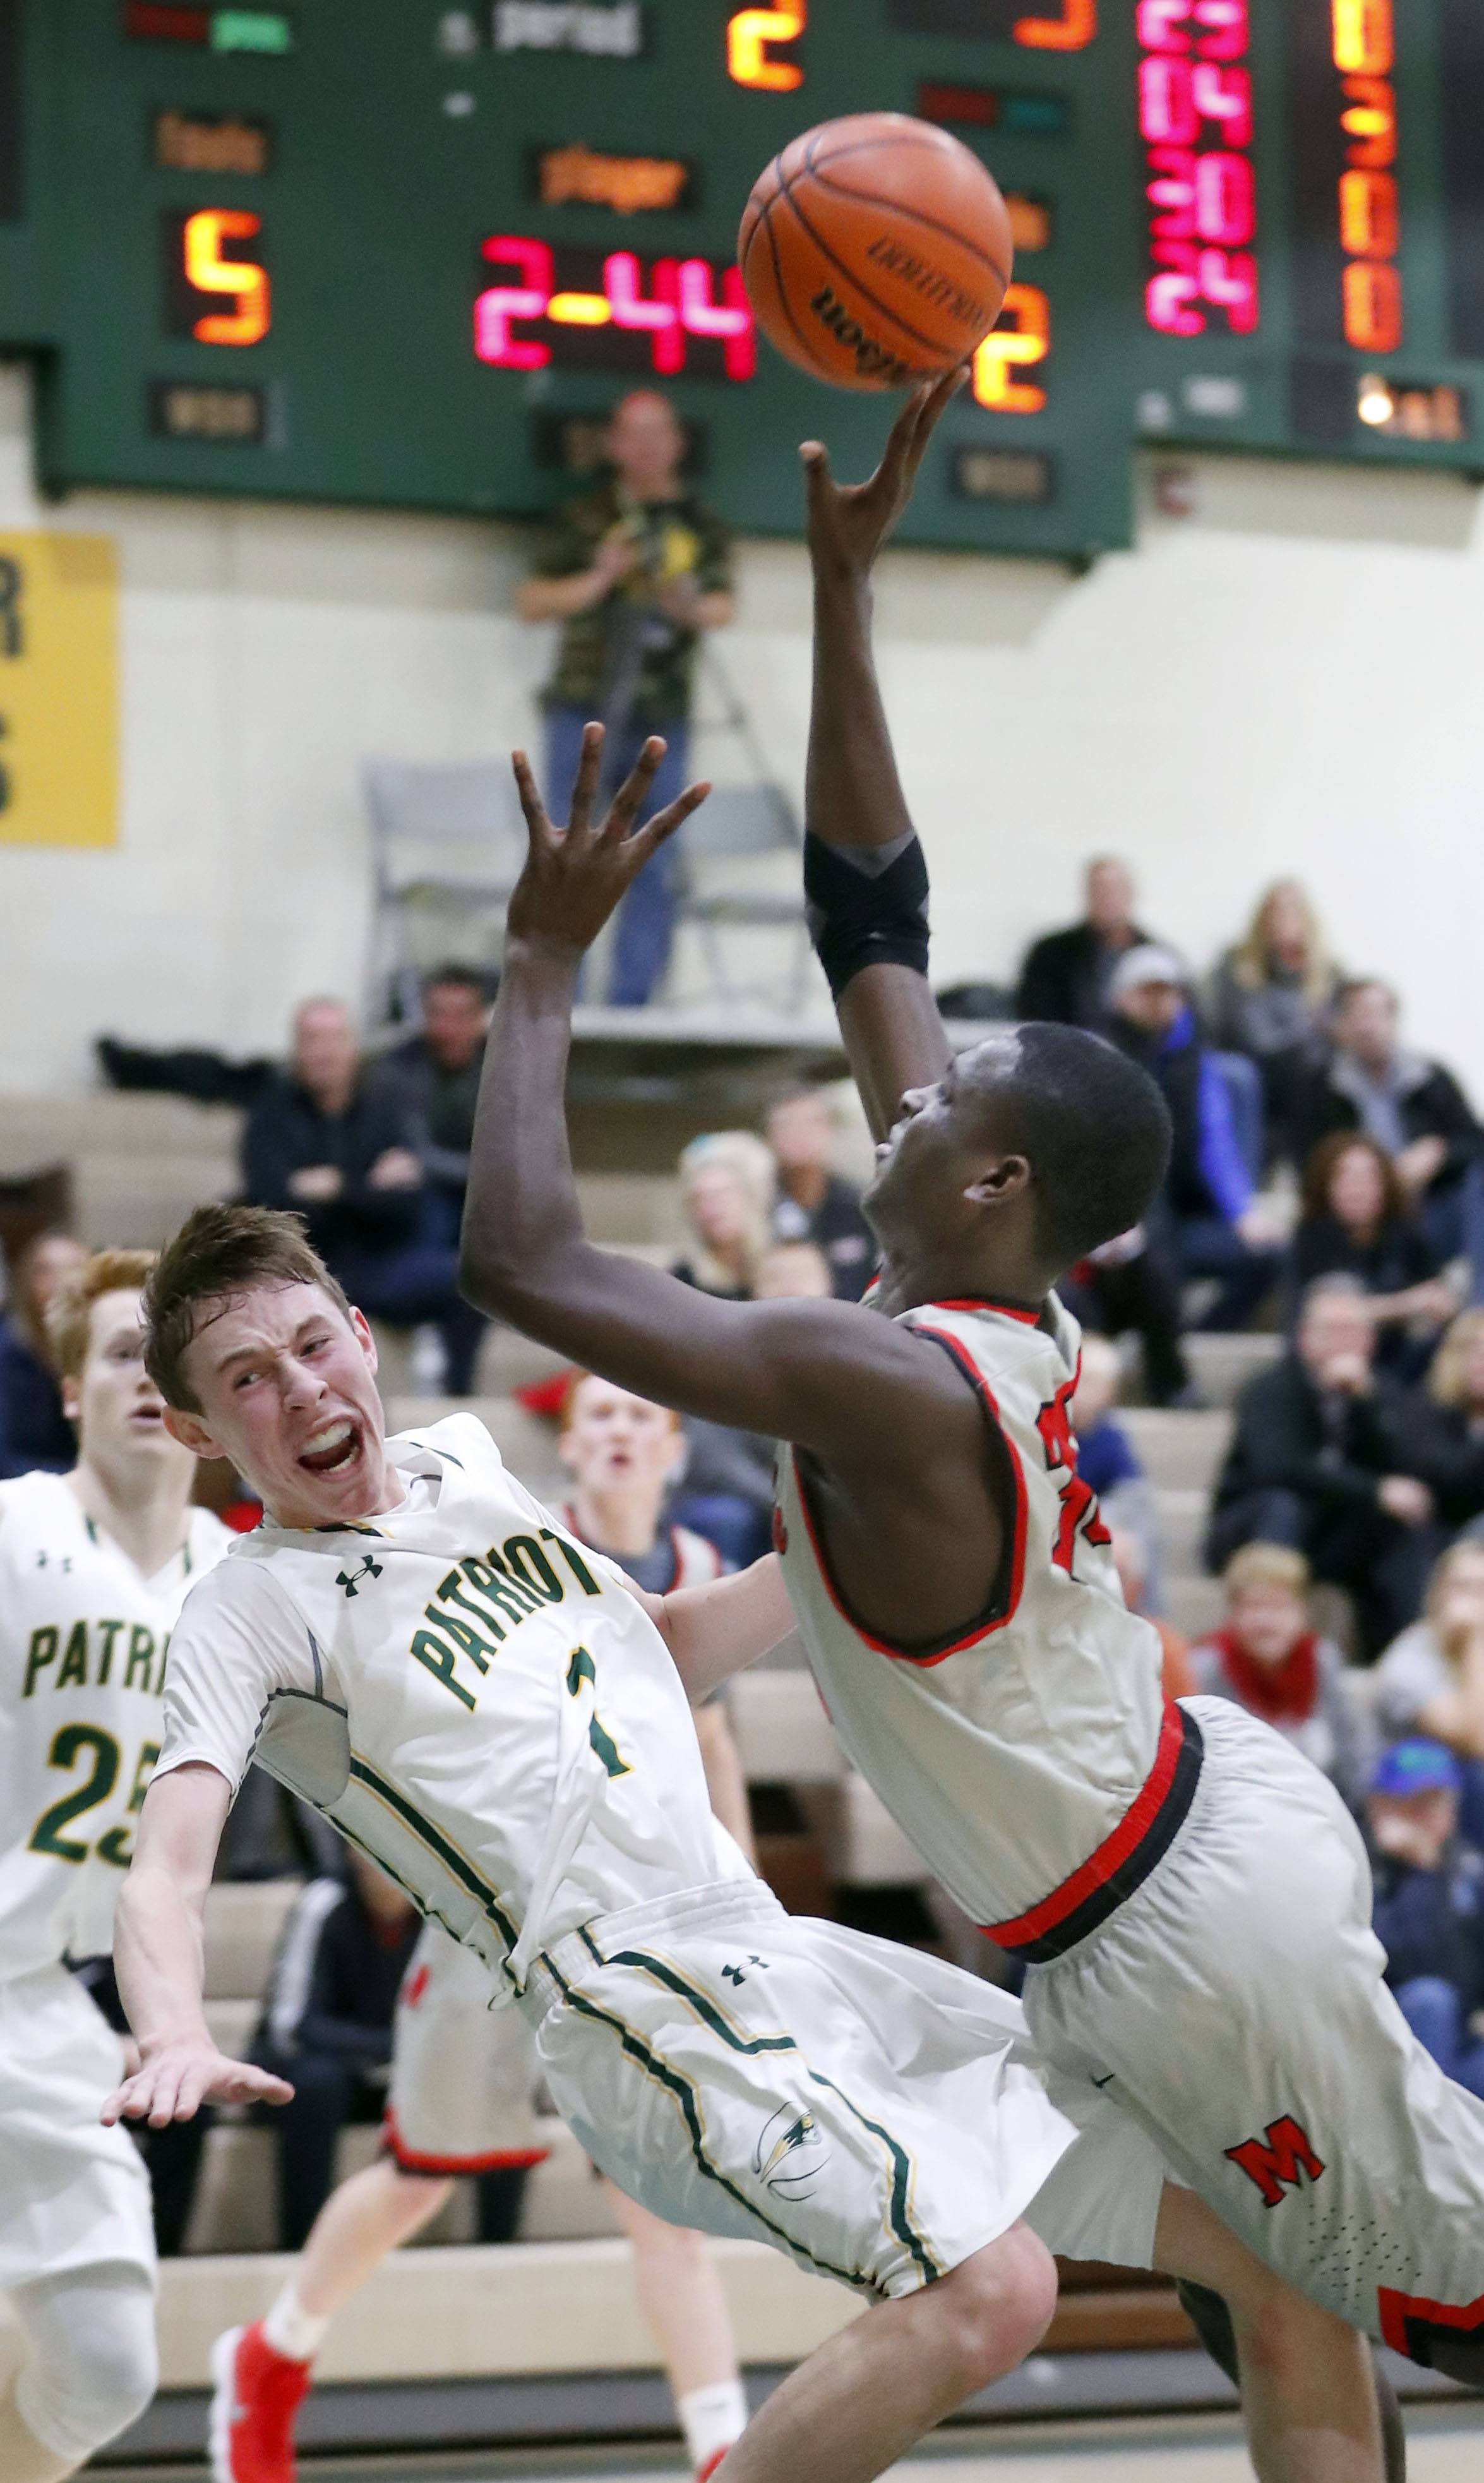 Mundelein's Chibuike Ebube, right, drives on Stevenson's Matthew Ambrose.